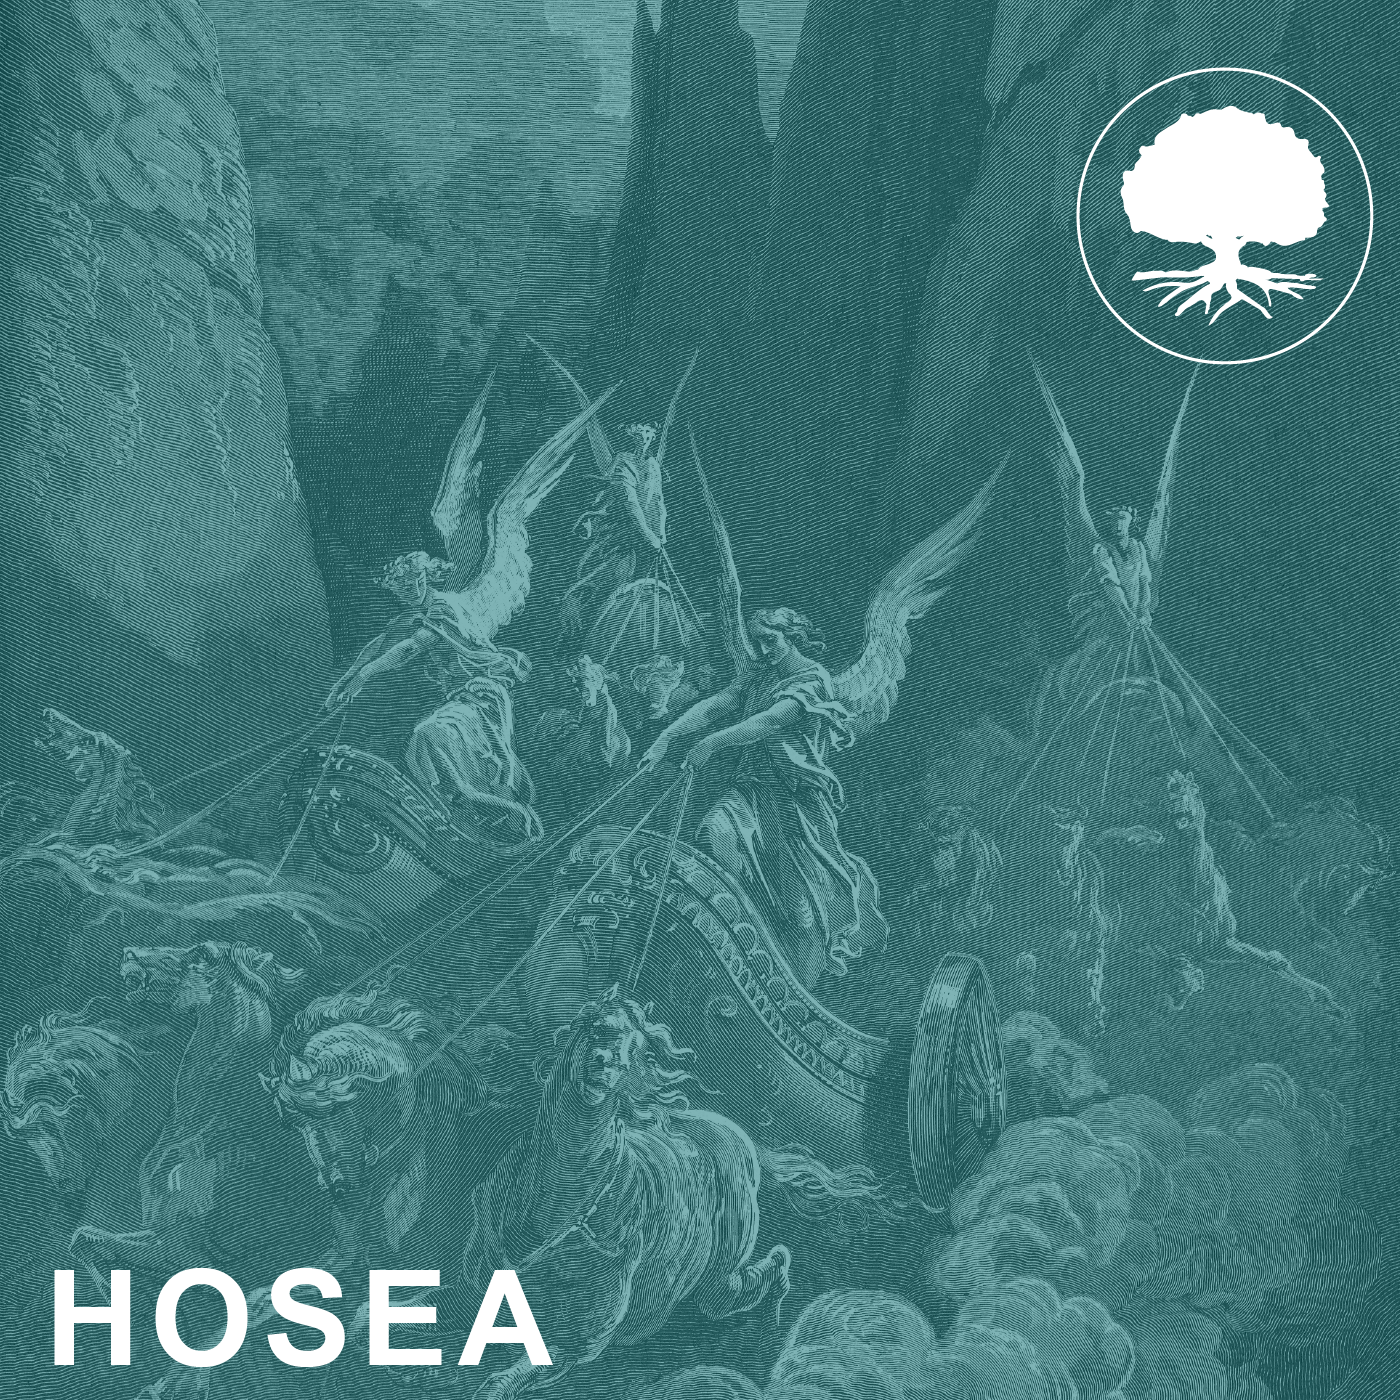 Want more Hosea? - Check out Pastor Nate's Audio series through the whole book.